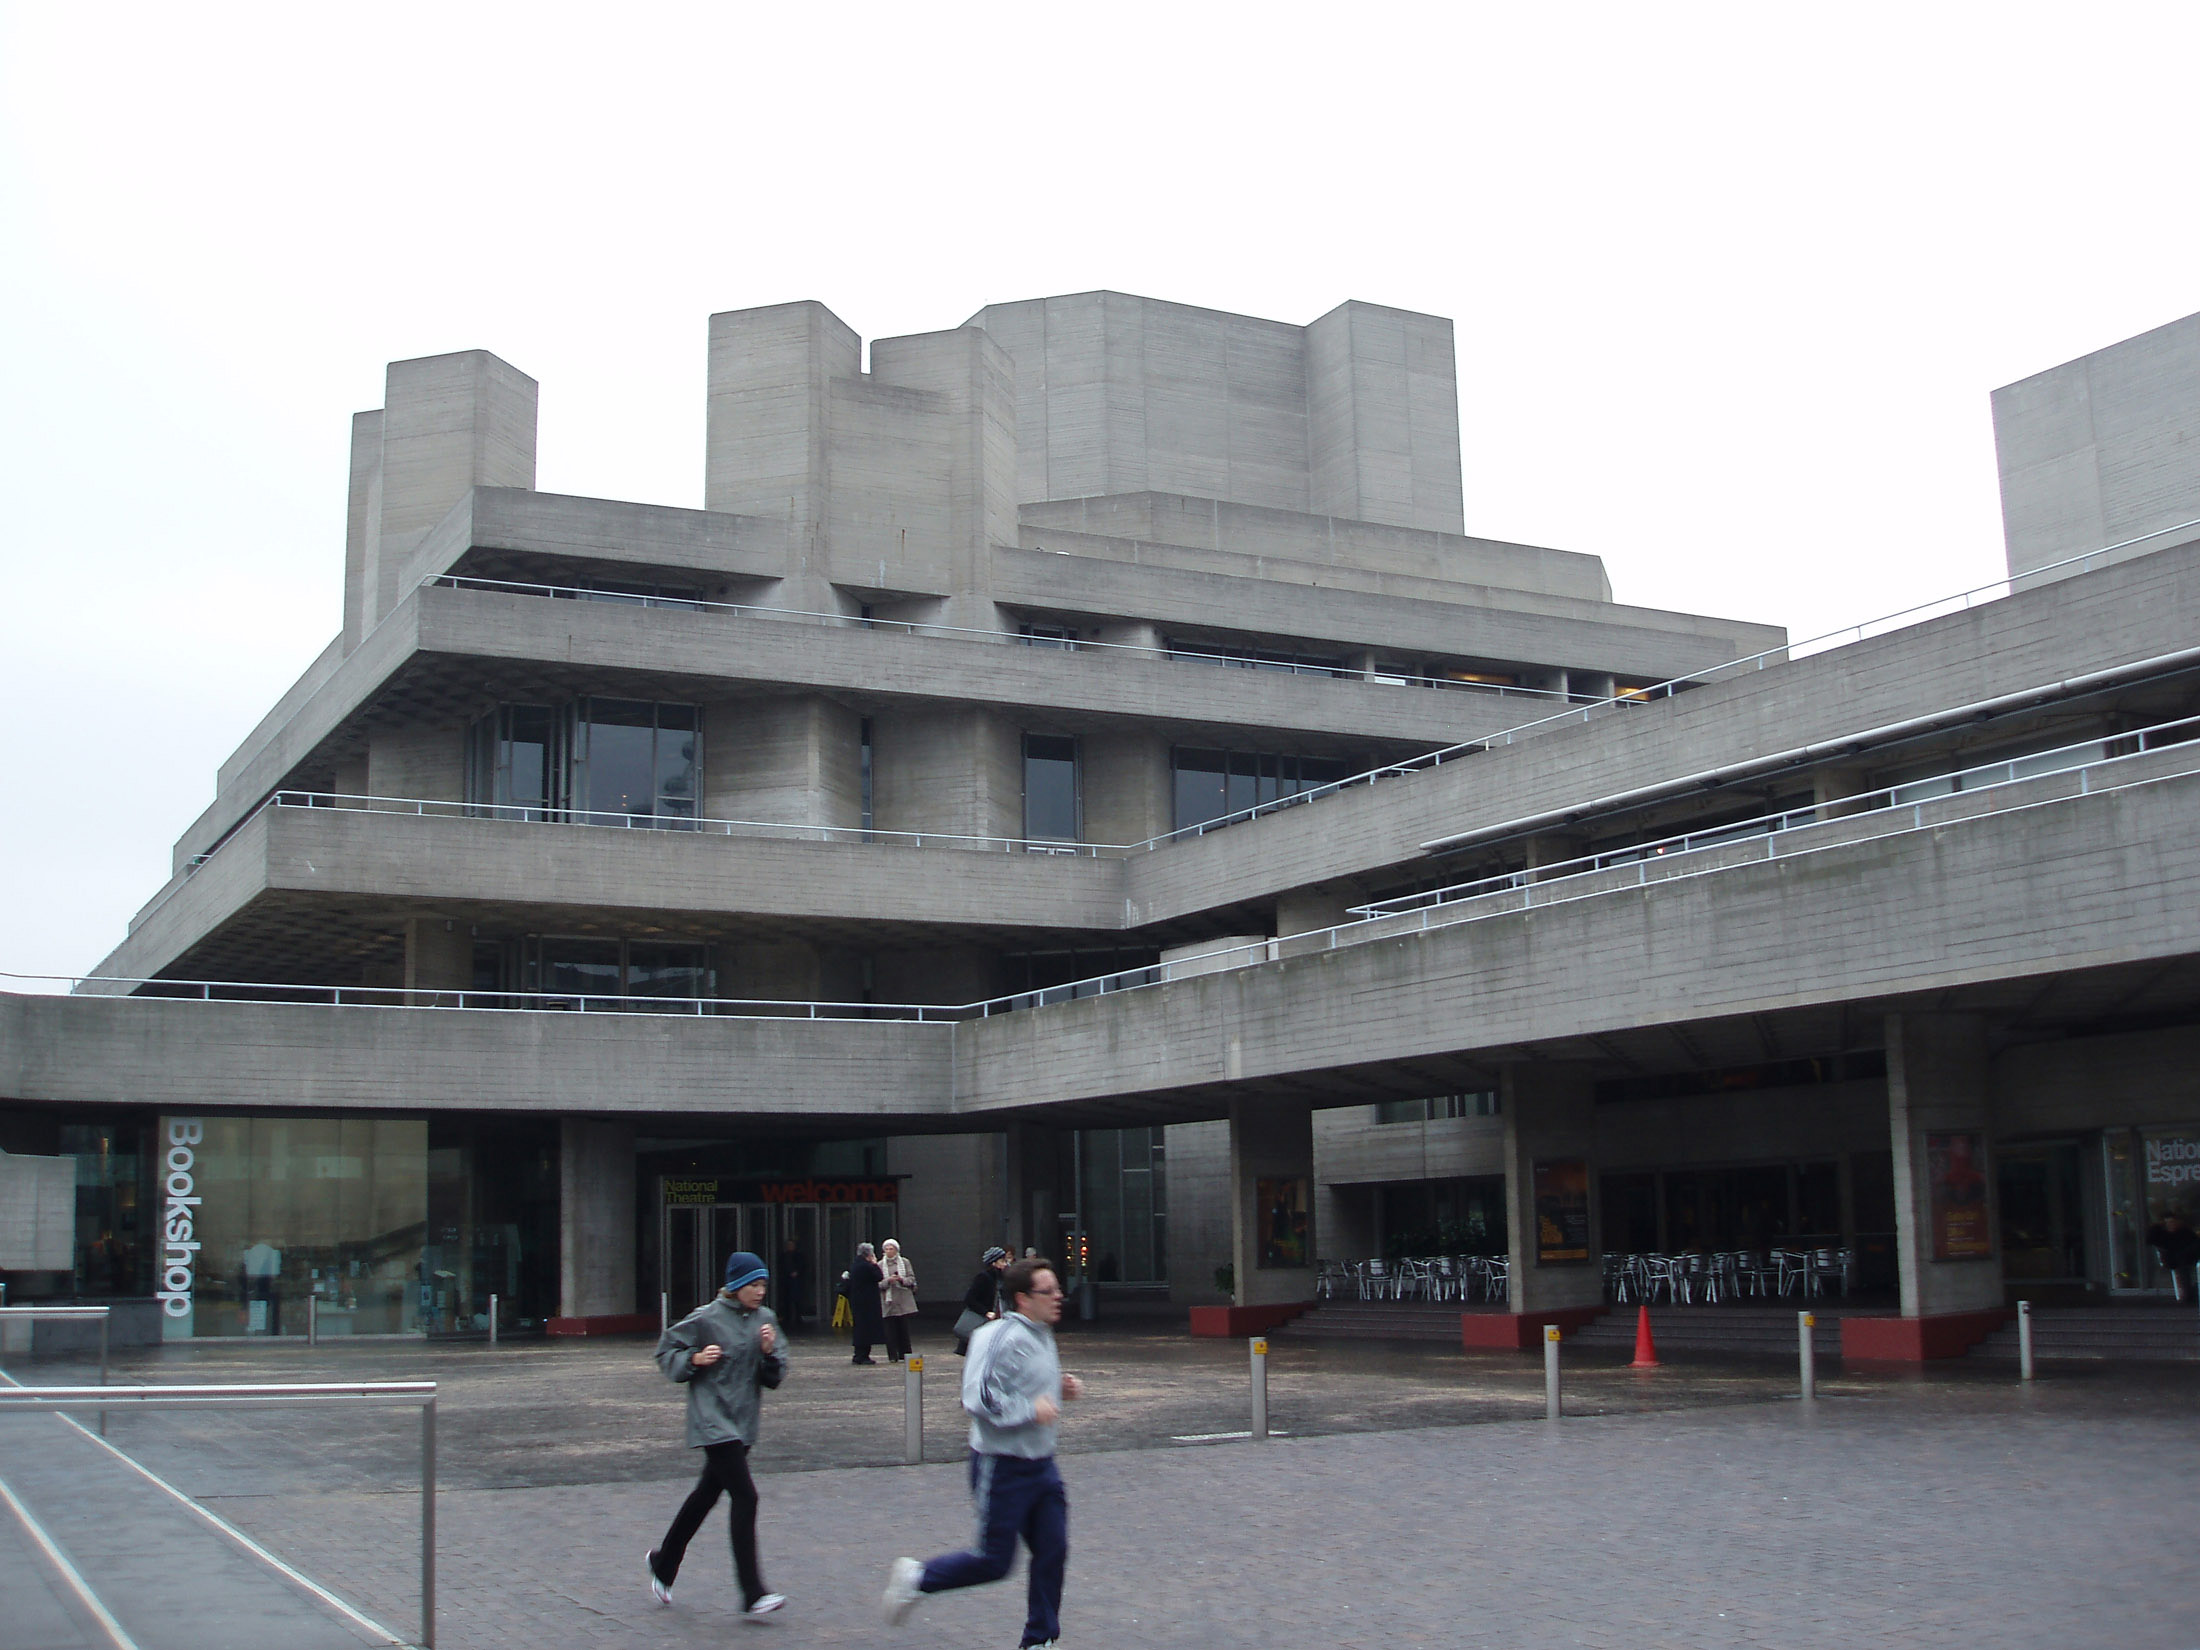 Royal National Theatre Building in London. It is also known as the National Theatre of Great Britain.